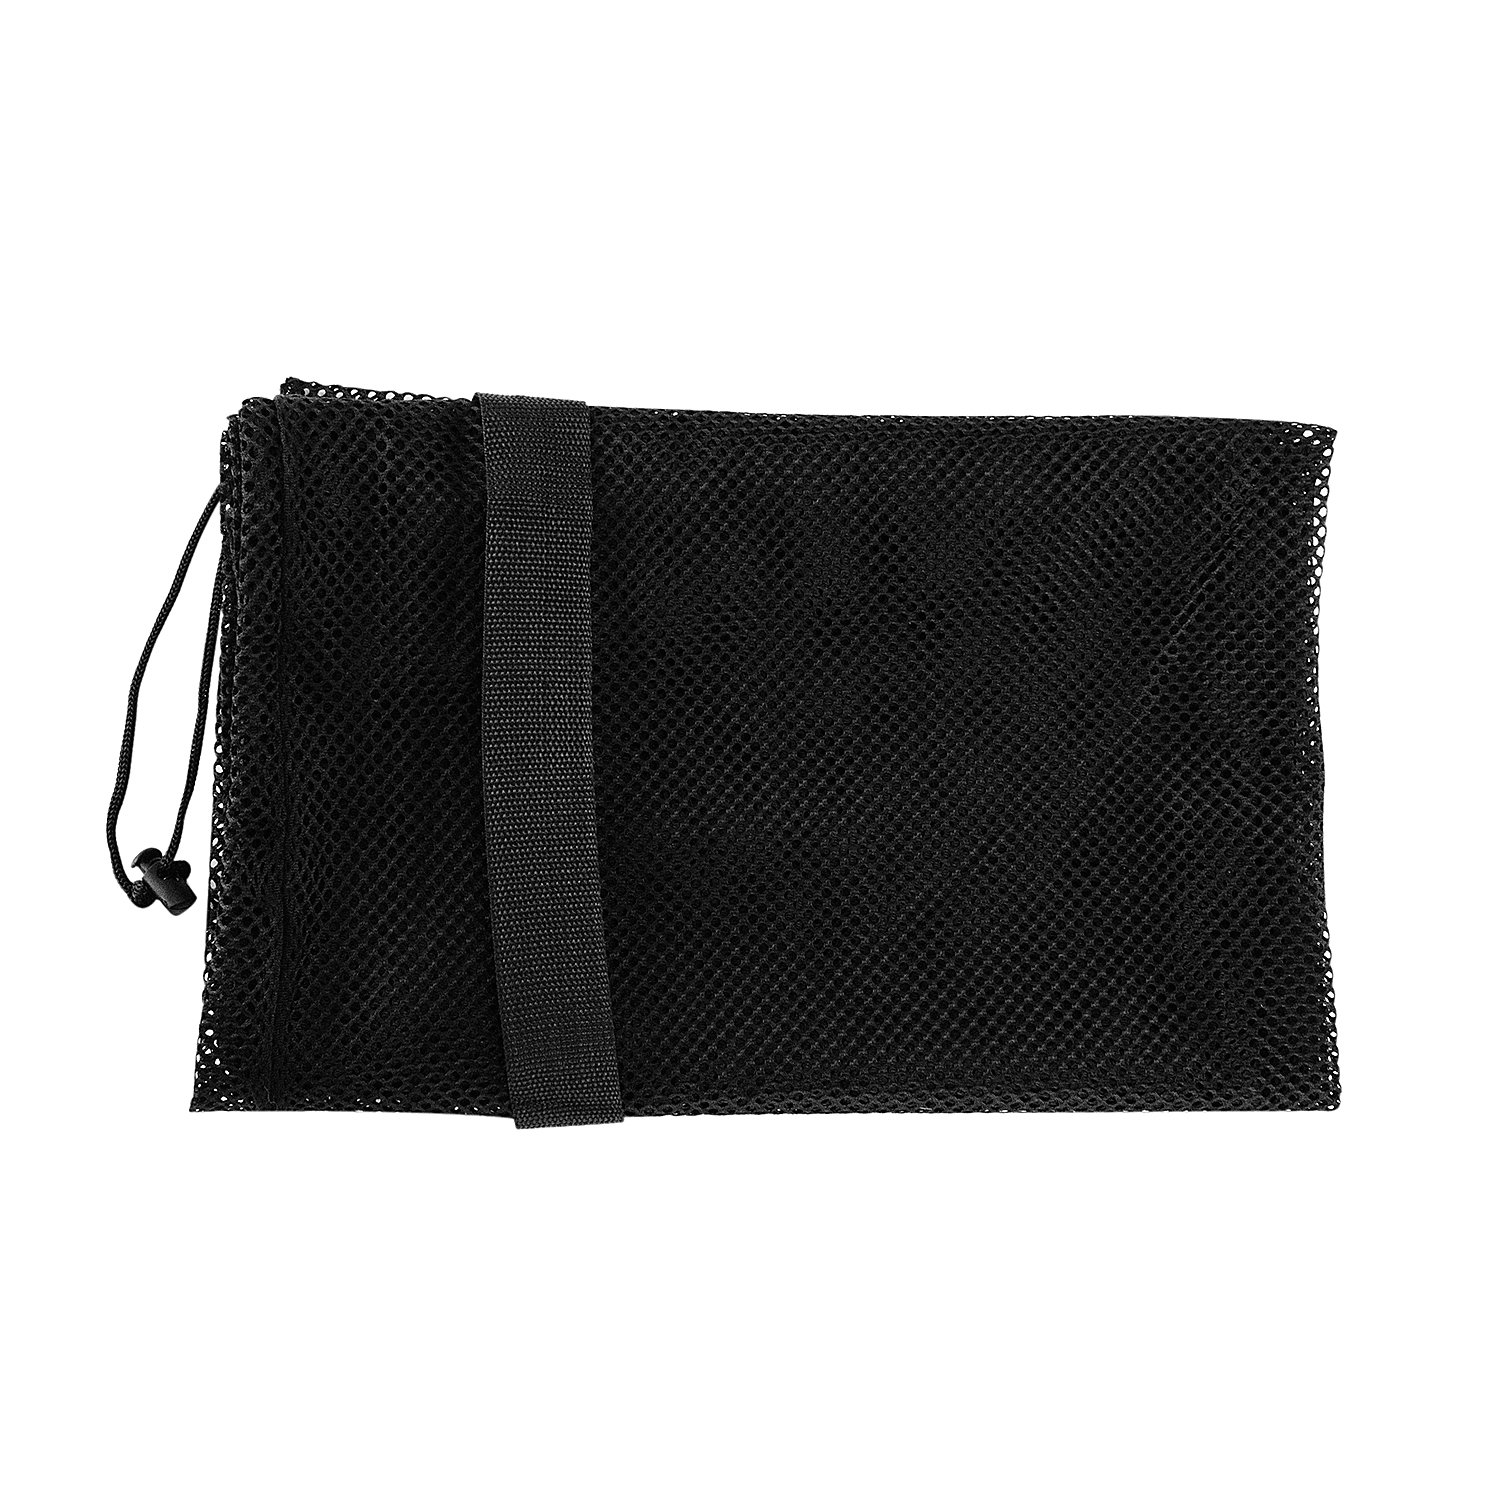 Super Z Outlet Sports Ball Bag Drawstring Mesh - Extra Large Professional Equipment with Shoulder Strap Black (30'' x 40'' Inches) by Super Z Outlet (Image #3)